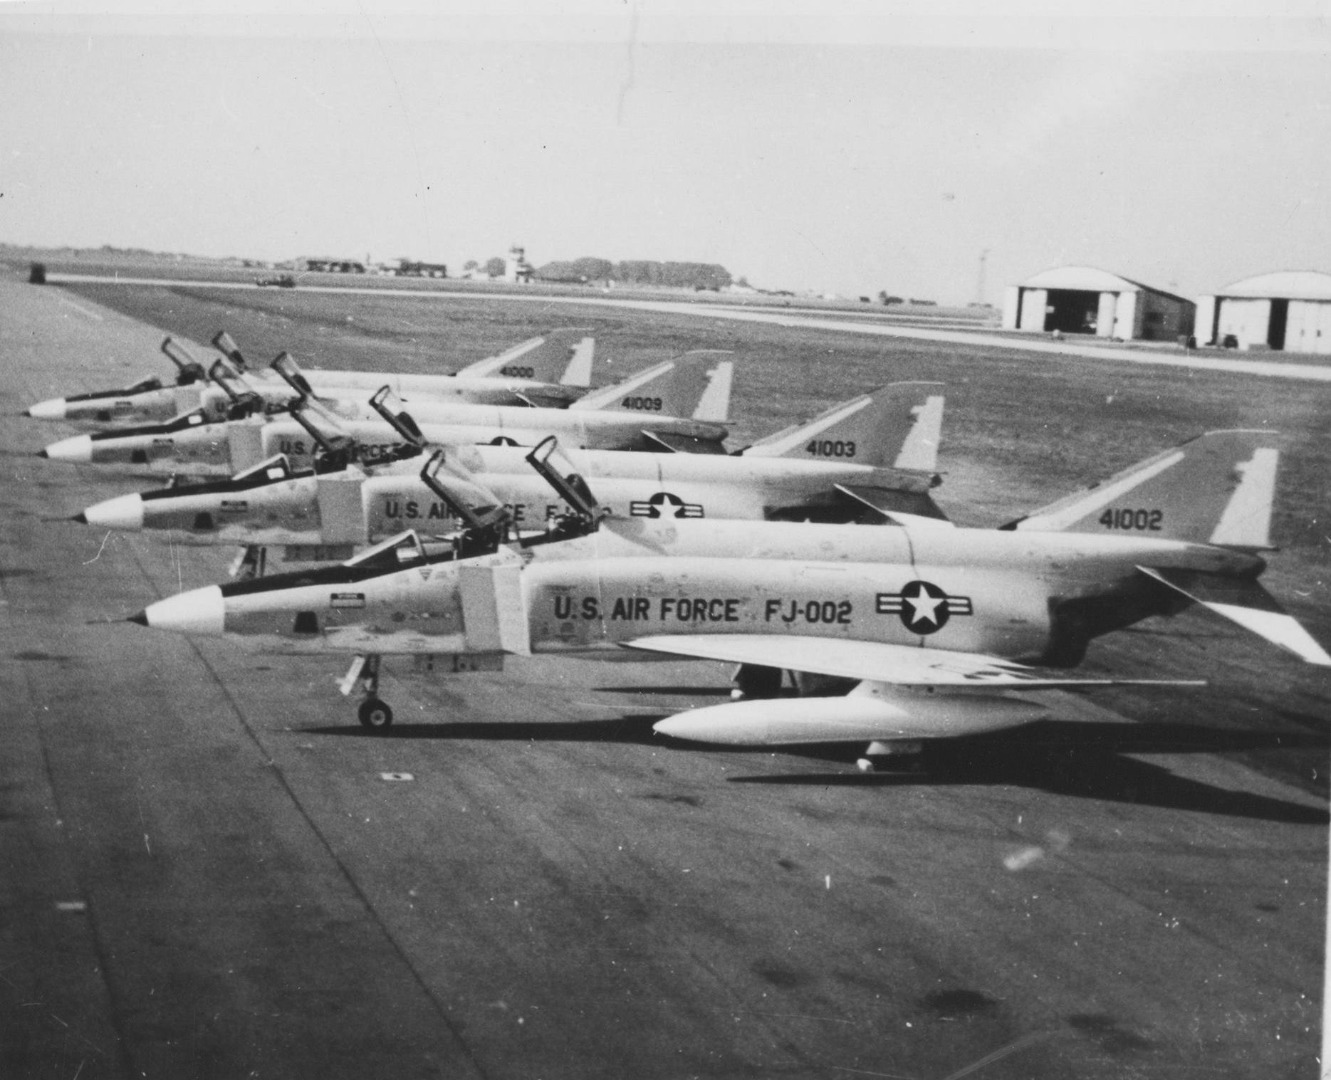 011RF-4Cw_arrive_at_Alconbury_1966.jpg